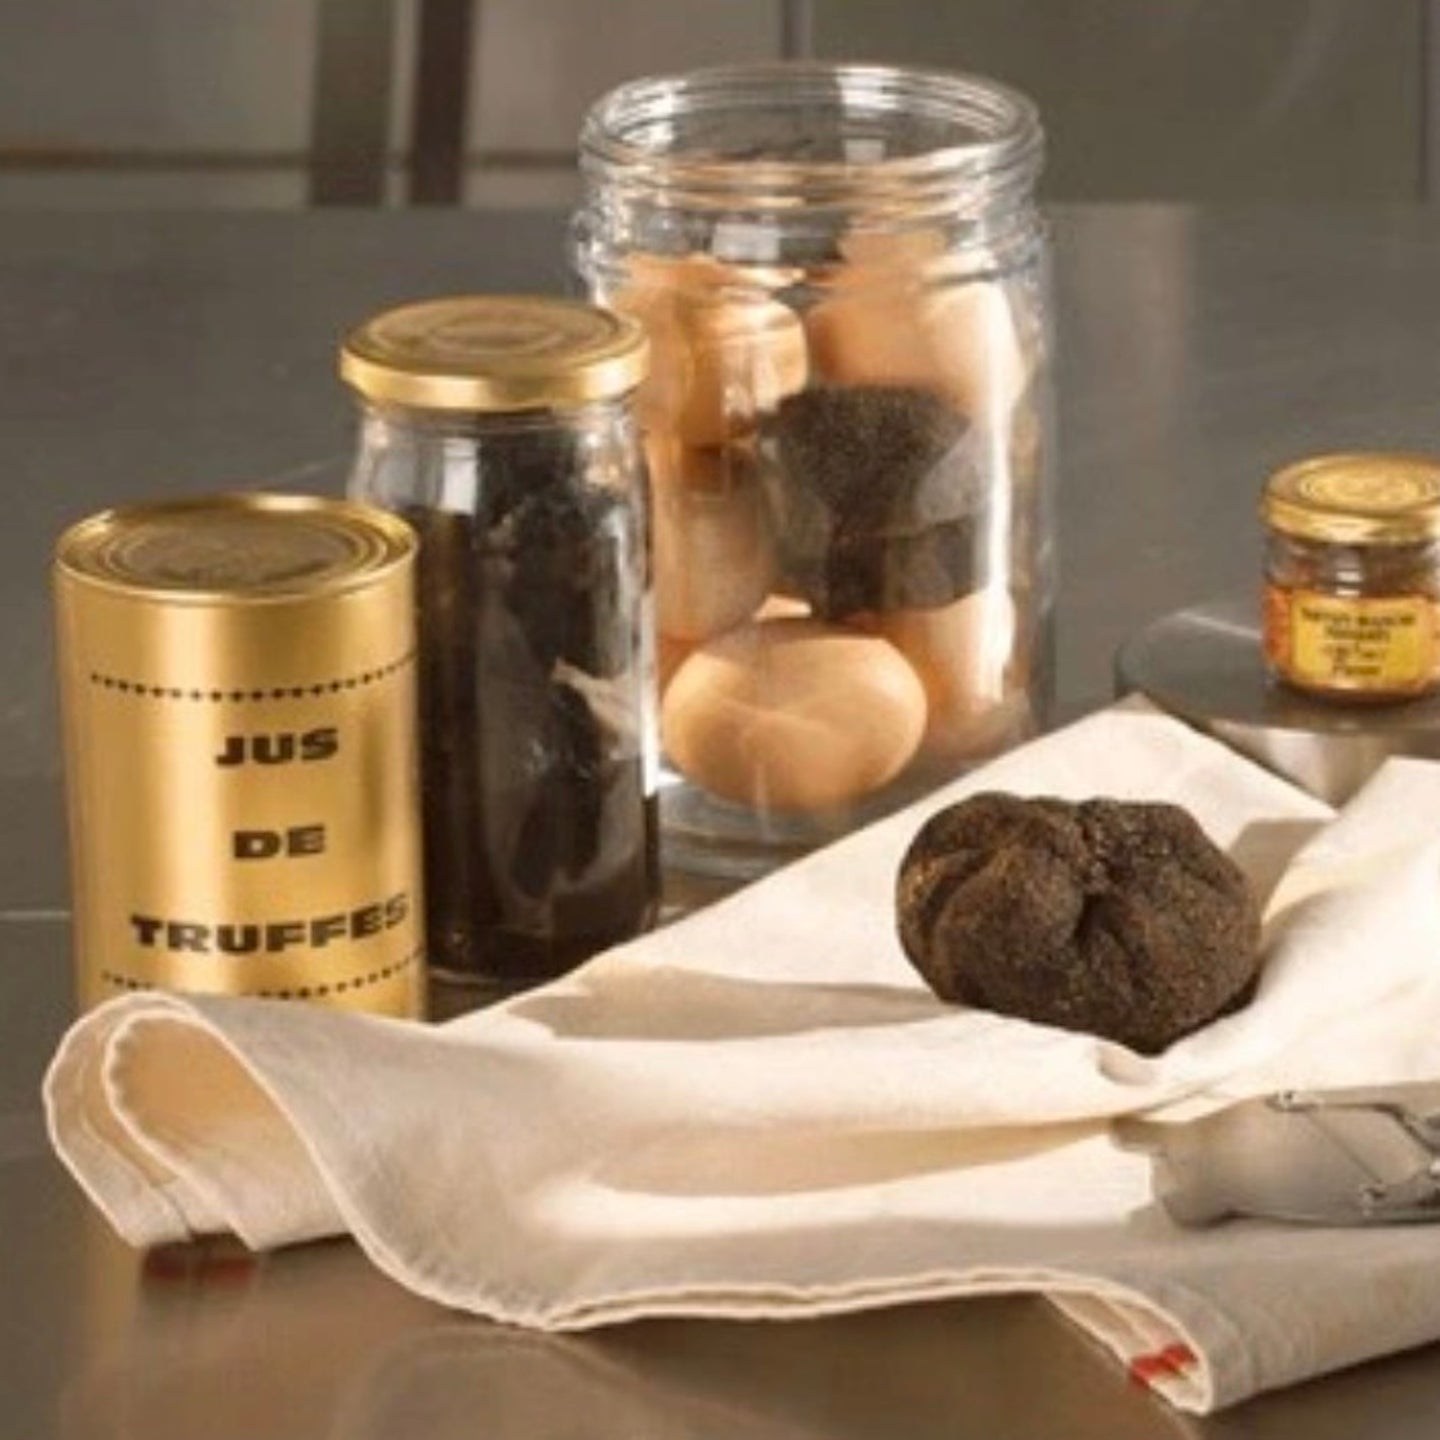 truffle-winter-juice-100-online-grocery-delivery-singapore-thenewgrocer